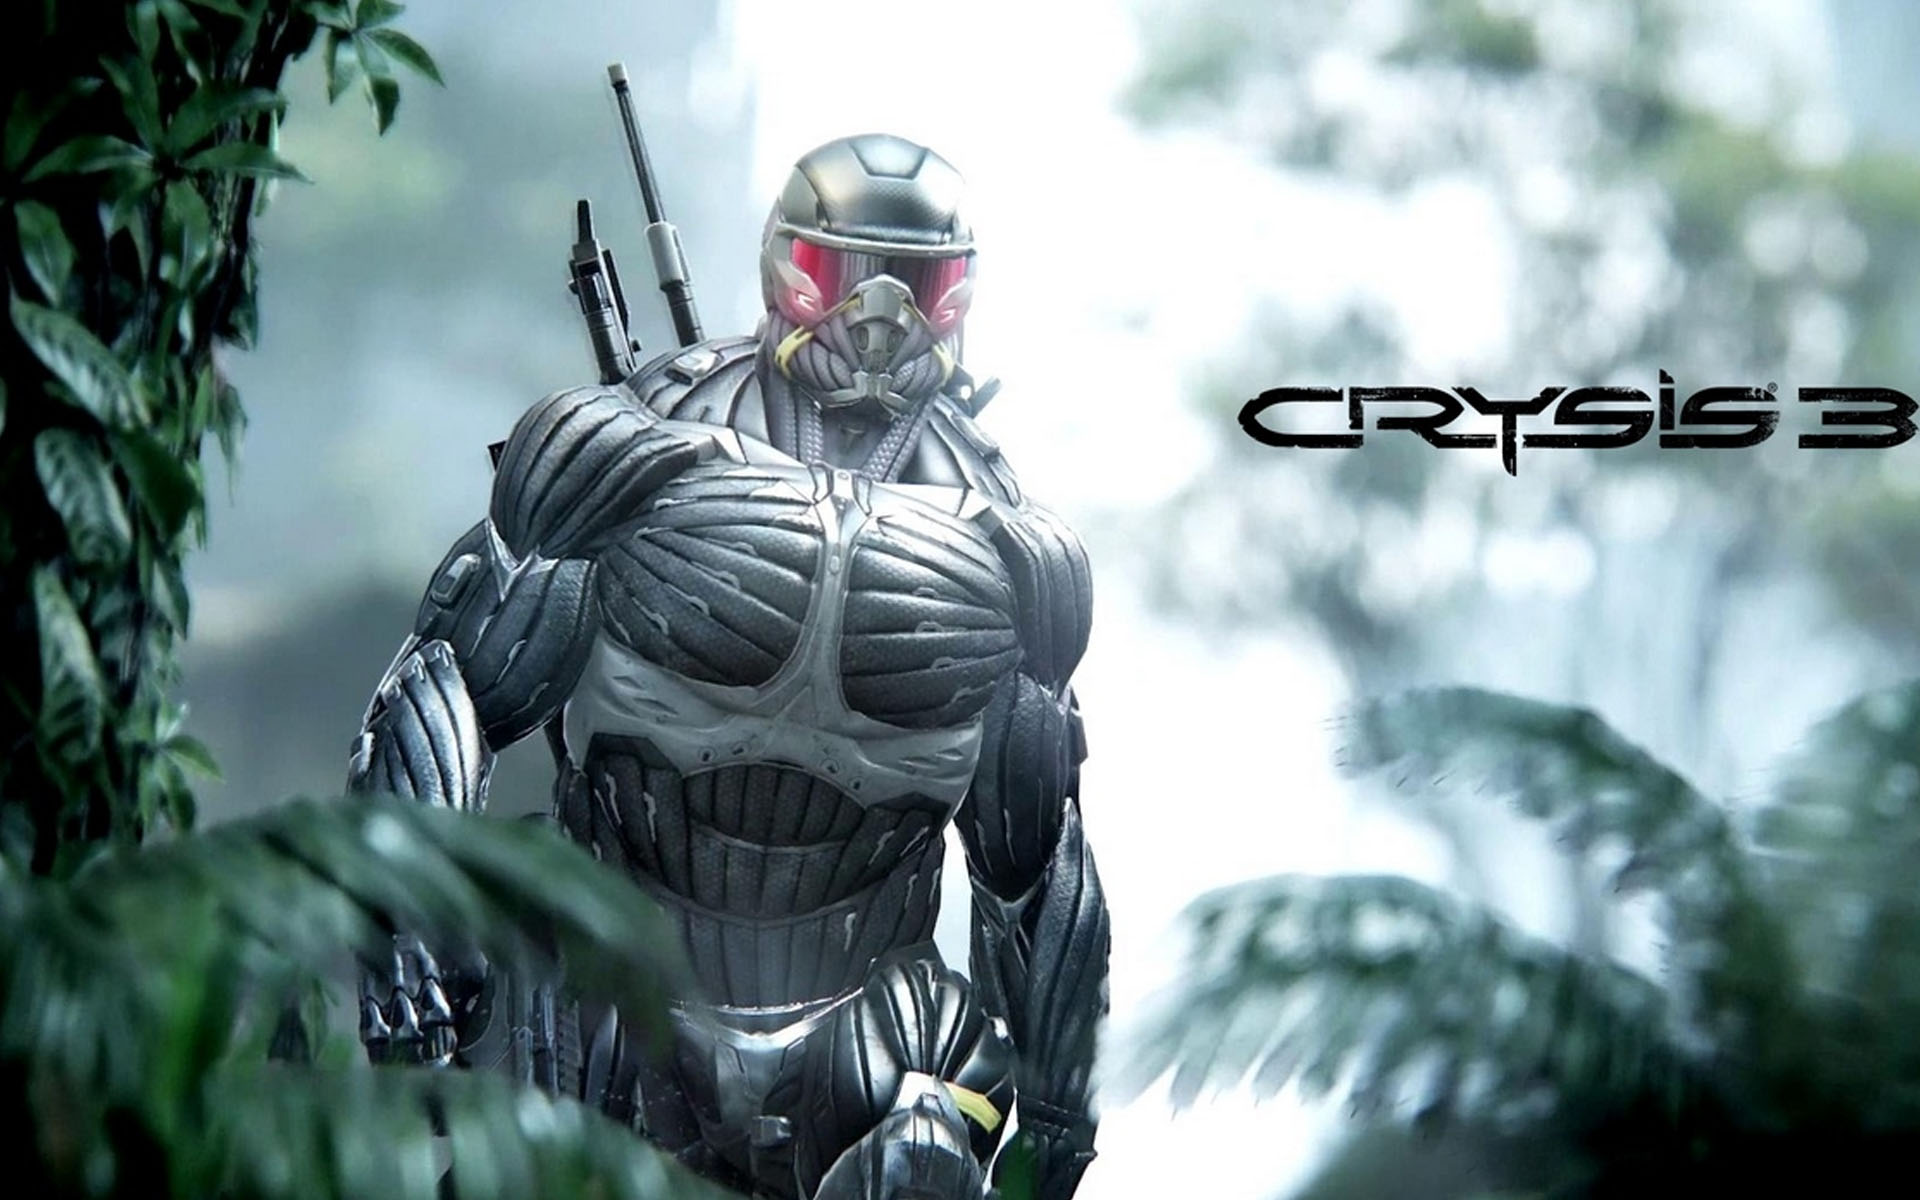 crysis 3 steam hd wallpaper hd latest wallpapers